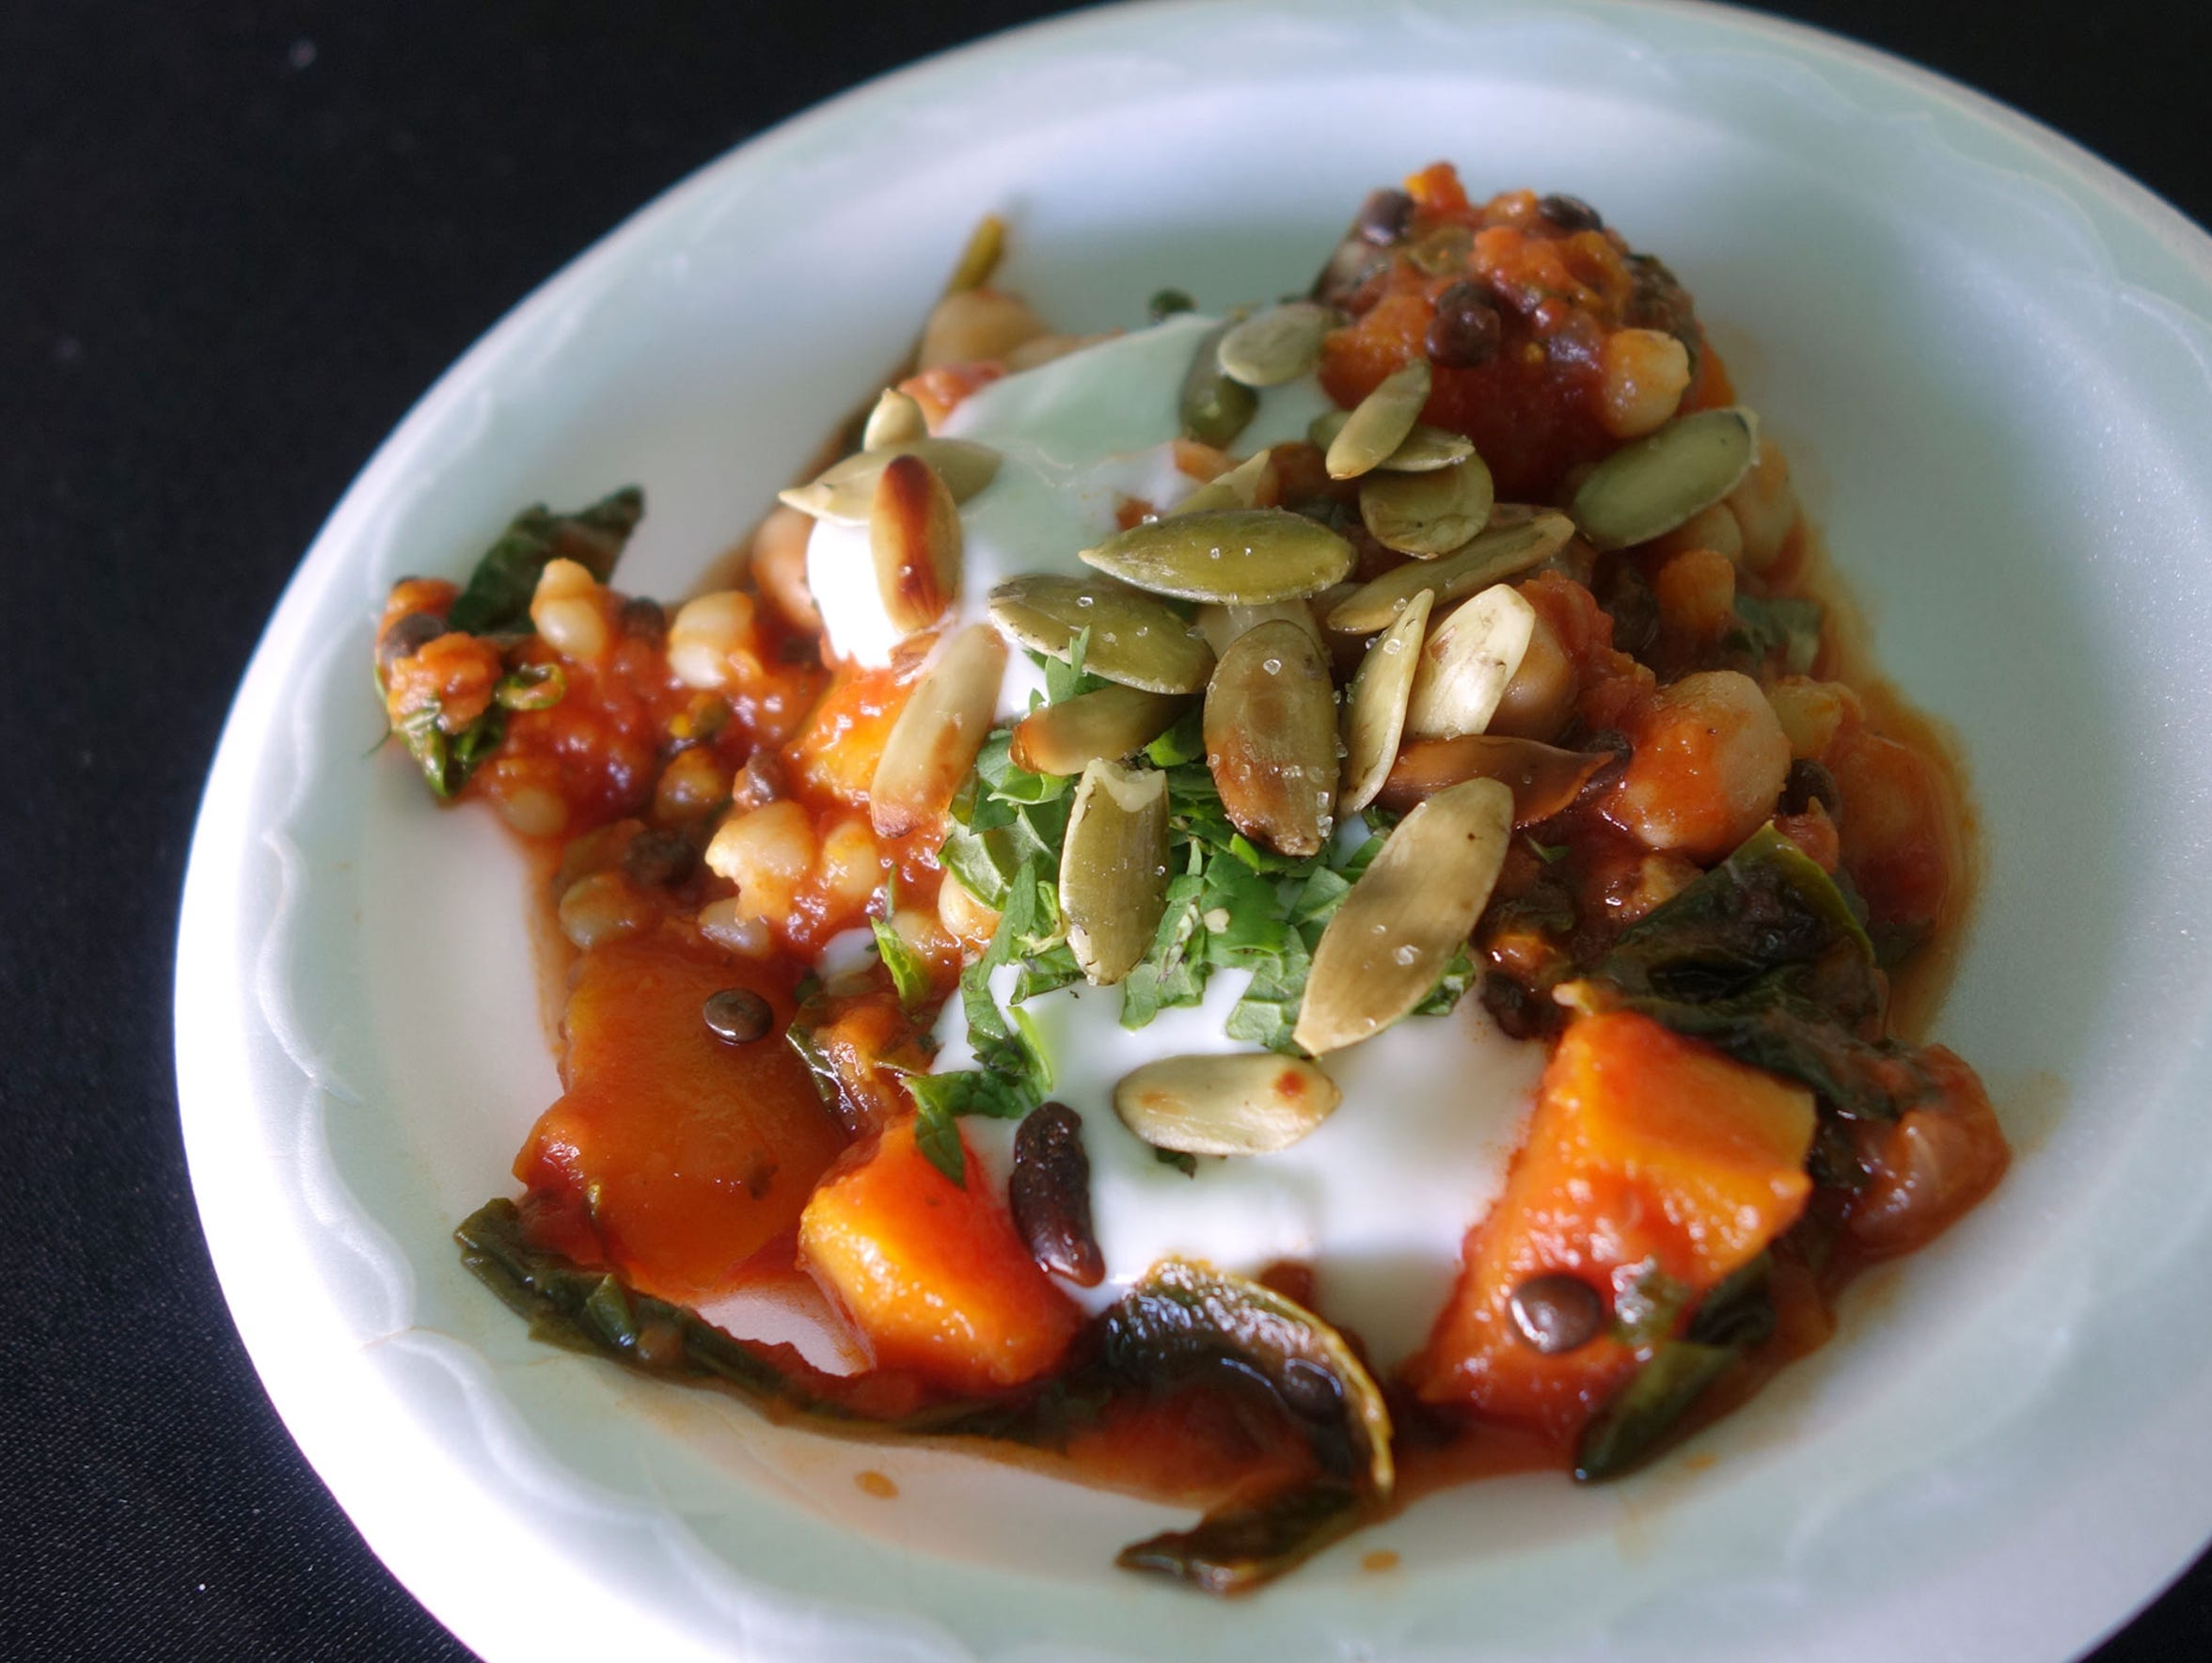 Moroccan-spiced chickpea and vegetable stew with lime yogurt and pepitas from Rancho Pinot.